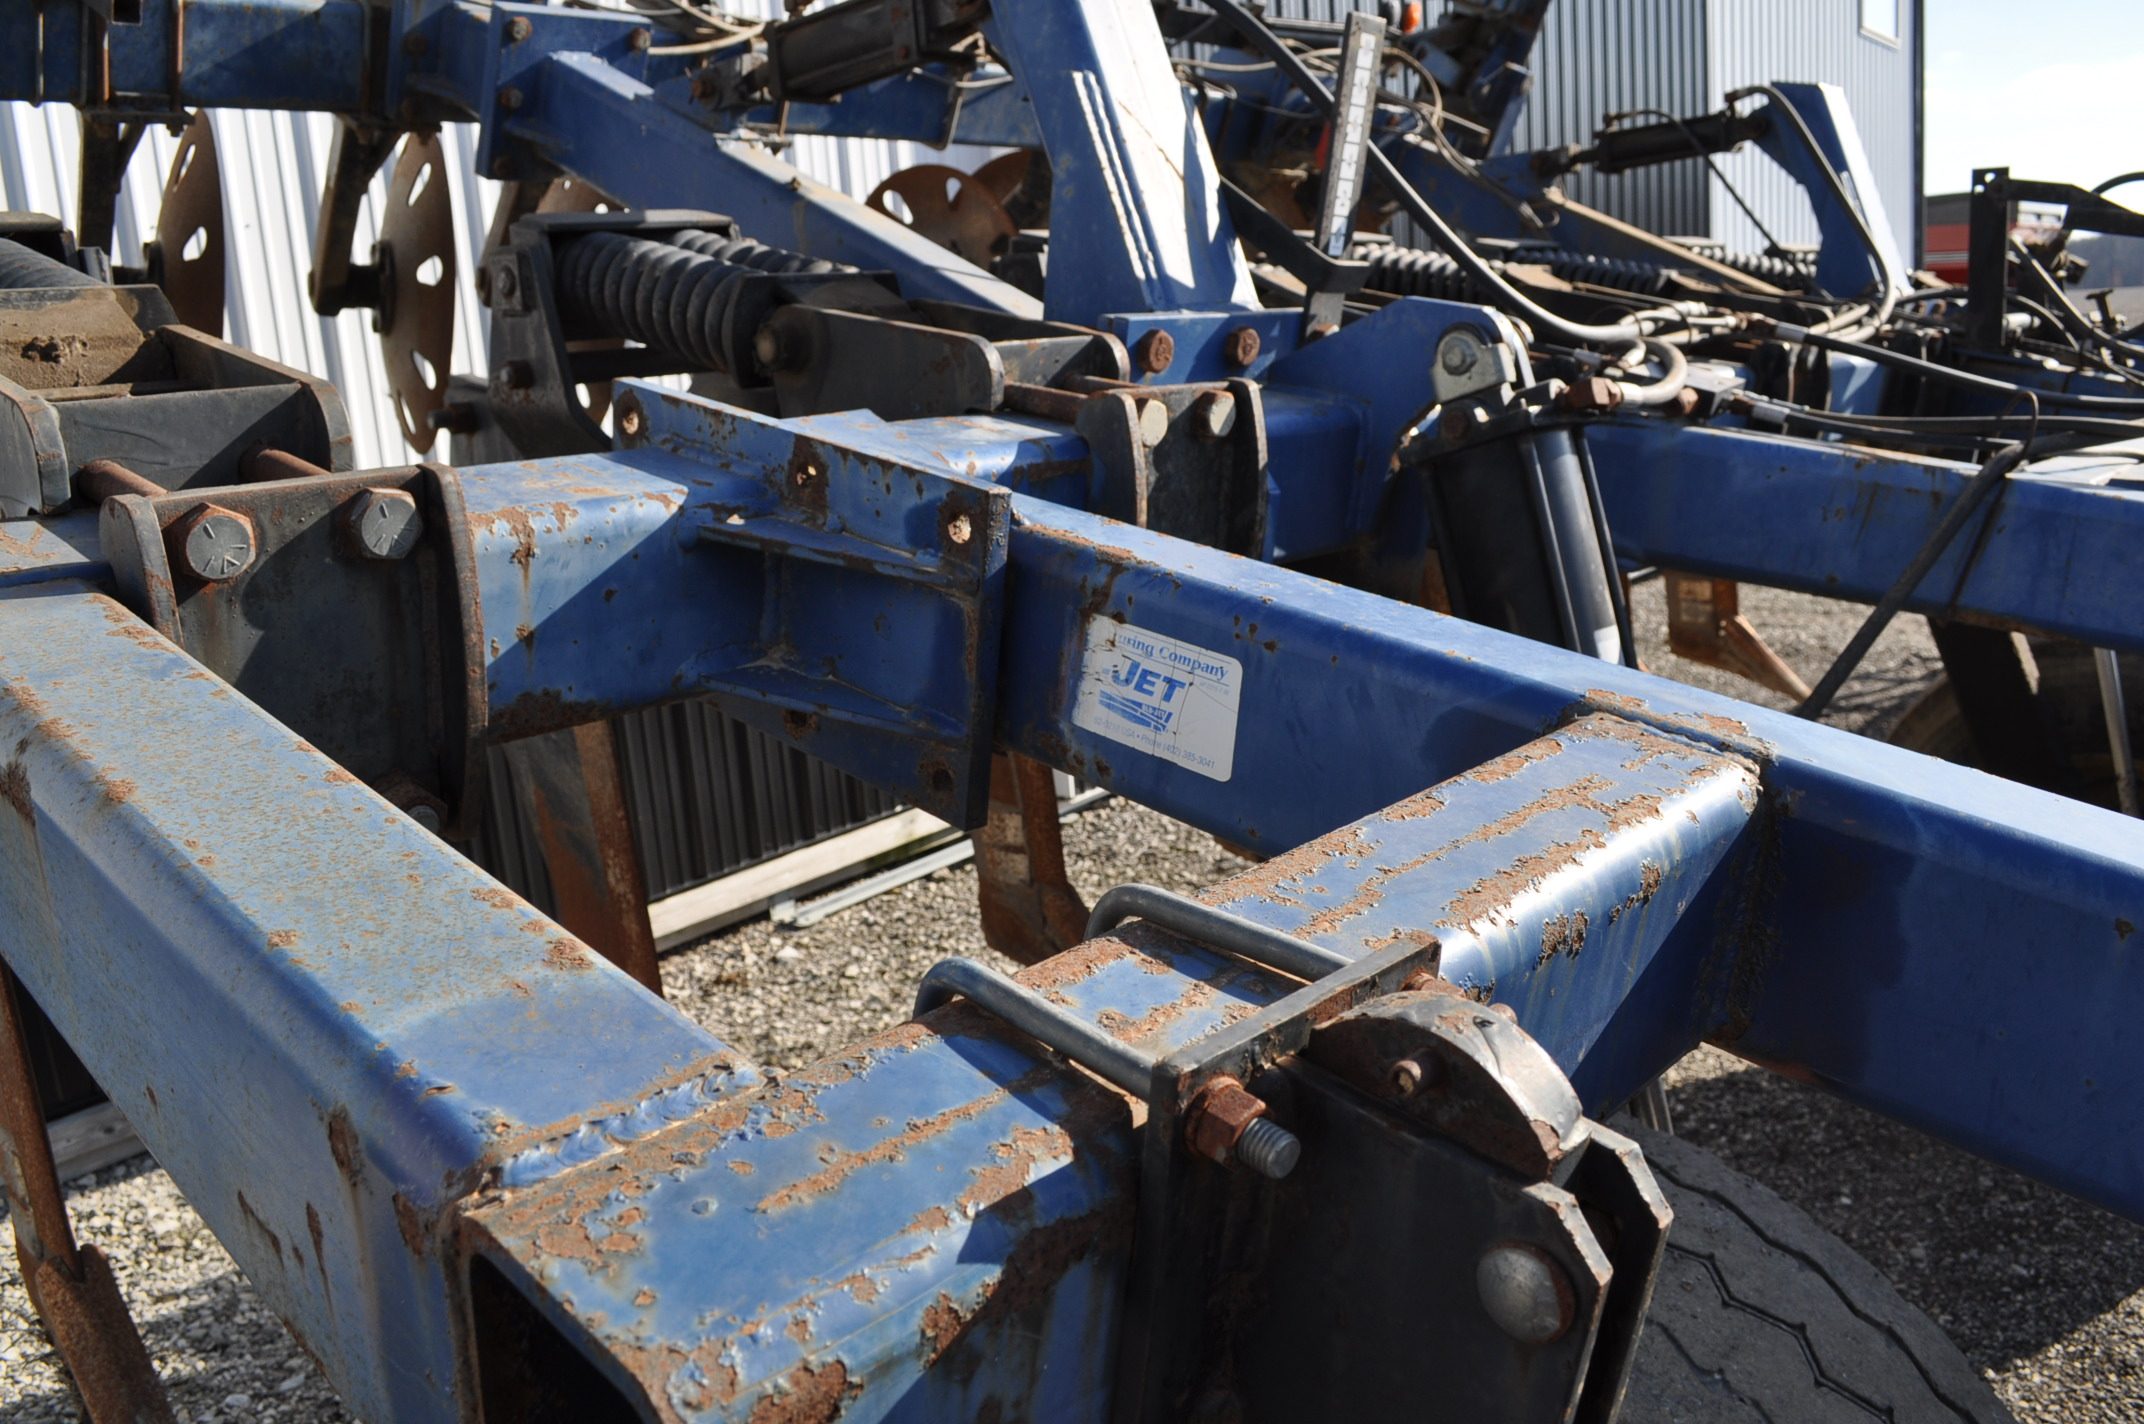 Blu-Jet Tillage Pro 7 shank inline ripper, front and rear hyd adjustable discs, sells with extra - Image 16 of 18